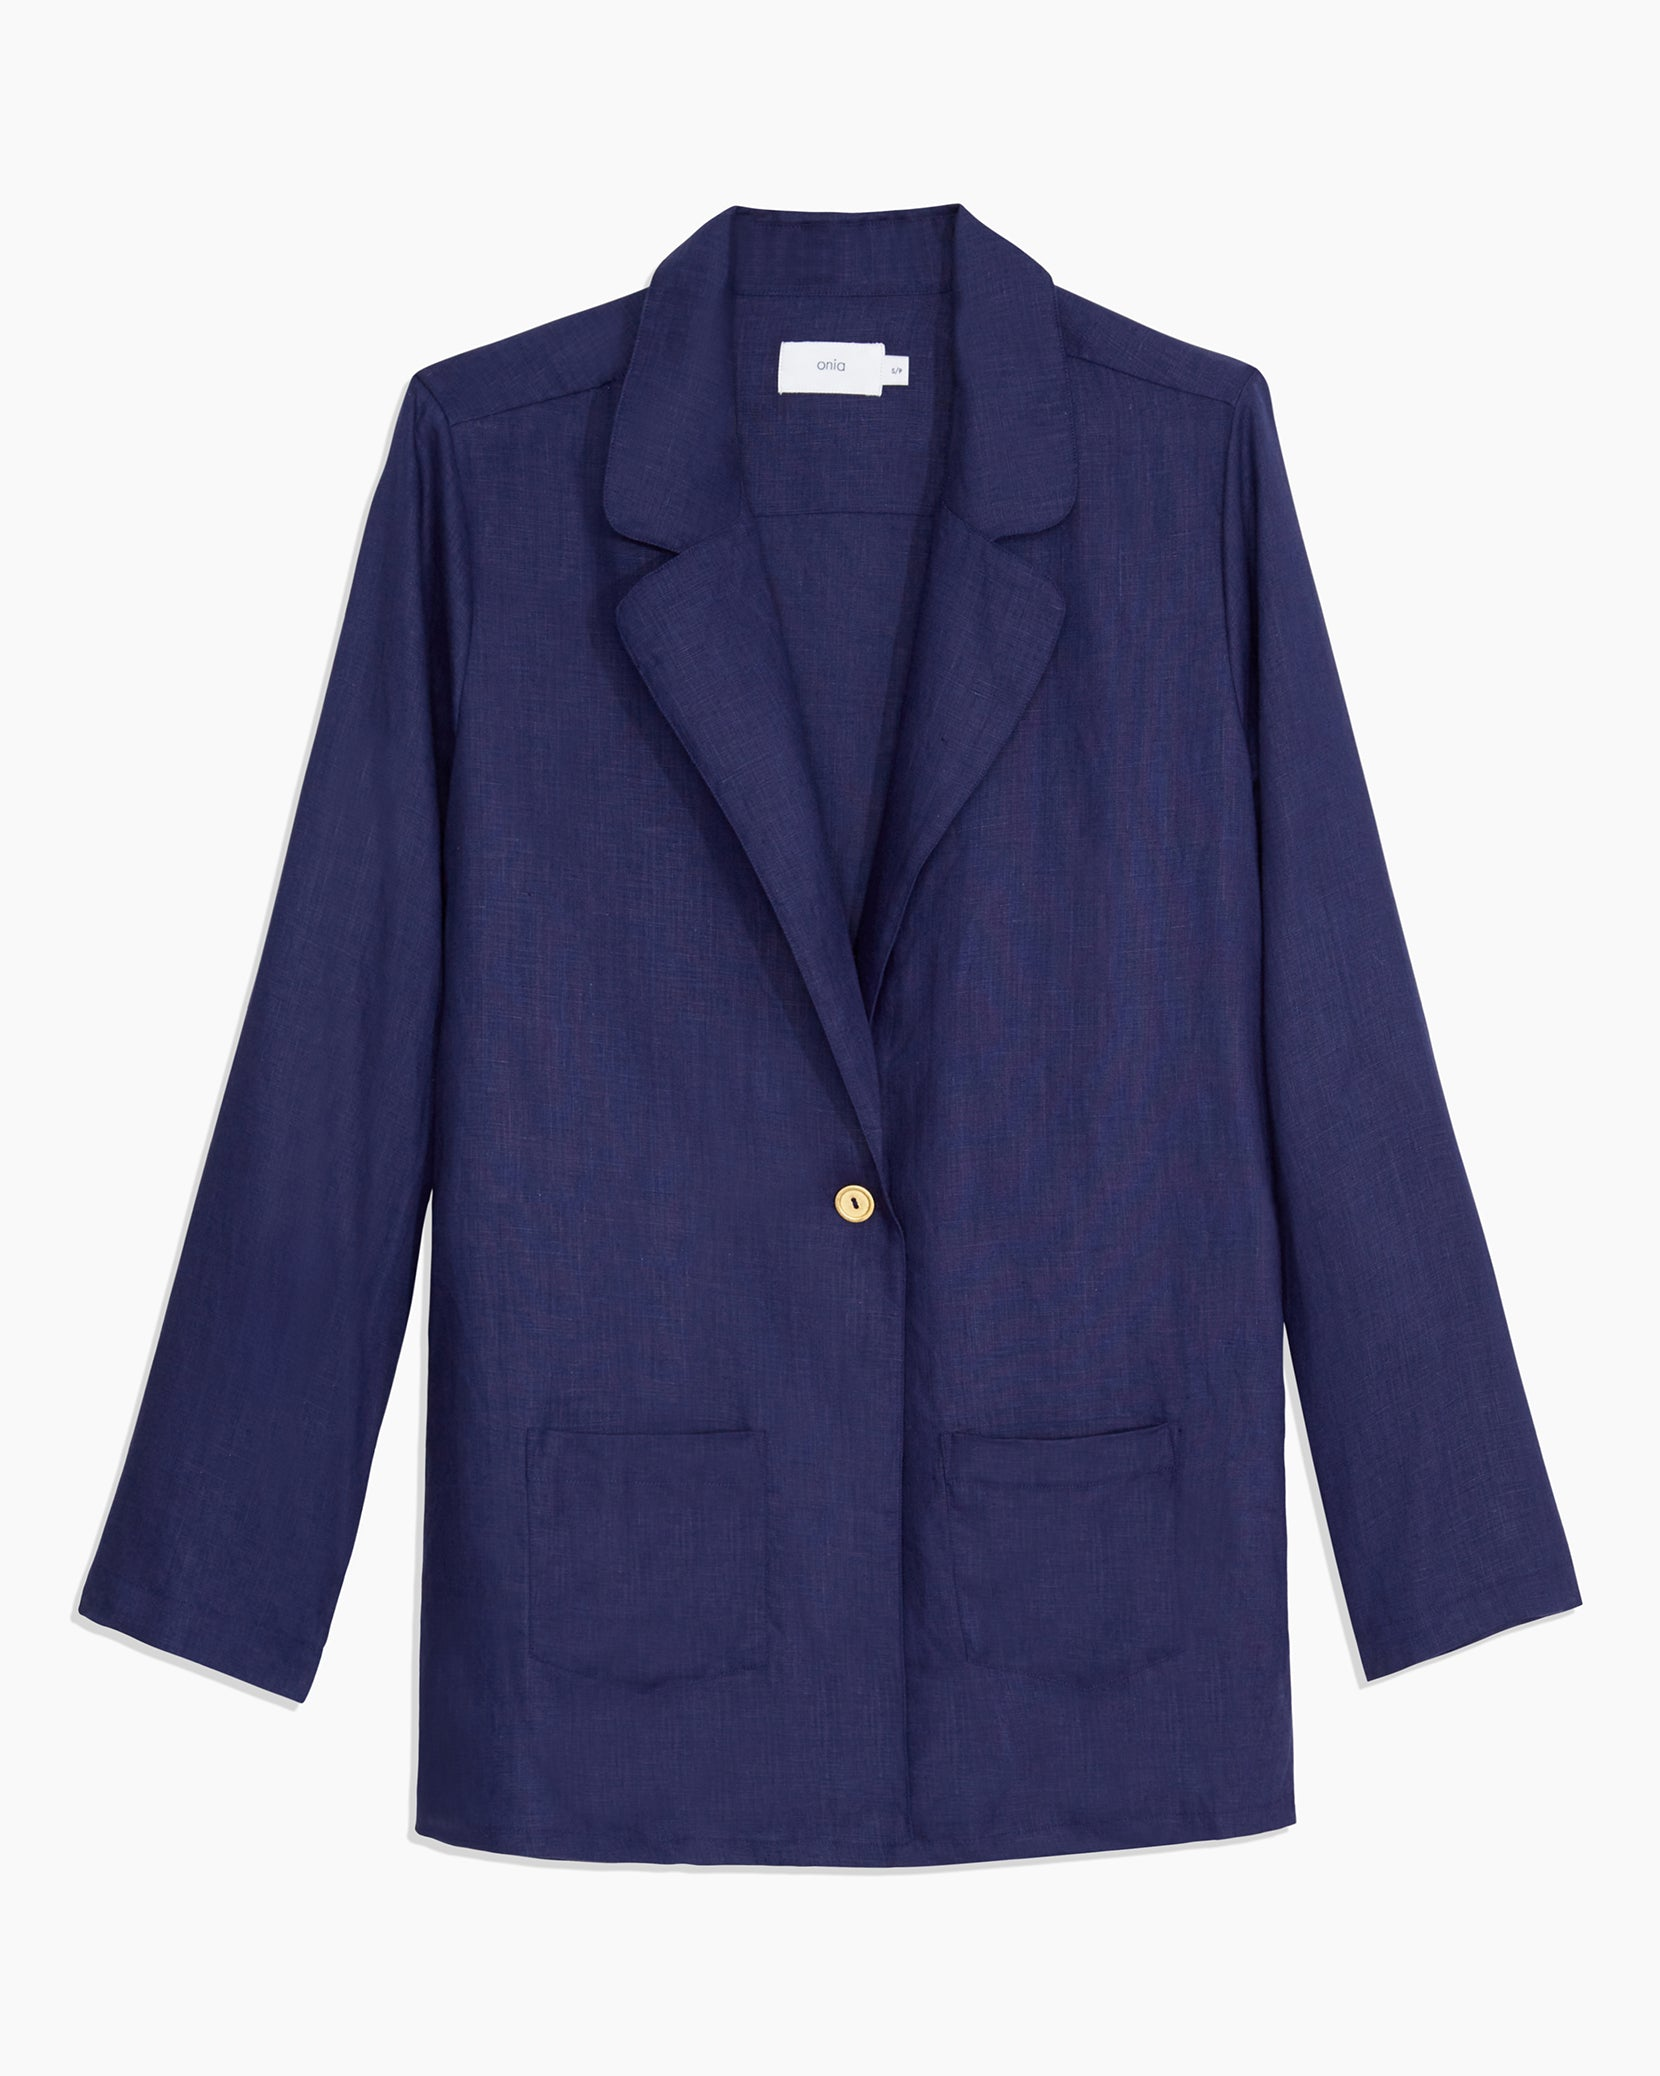 Linen Beach Blazer in Navy - 6 - Onia